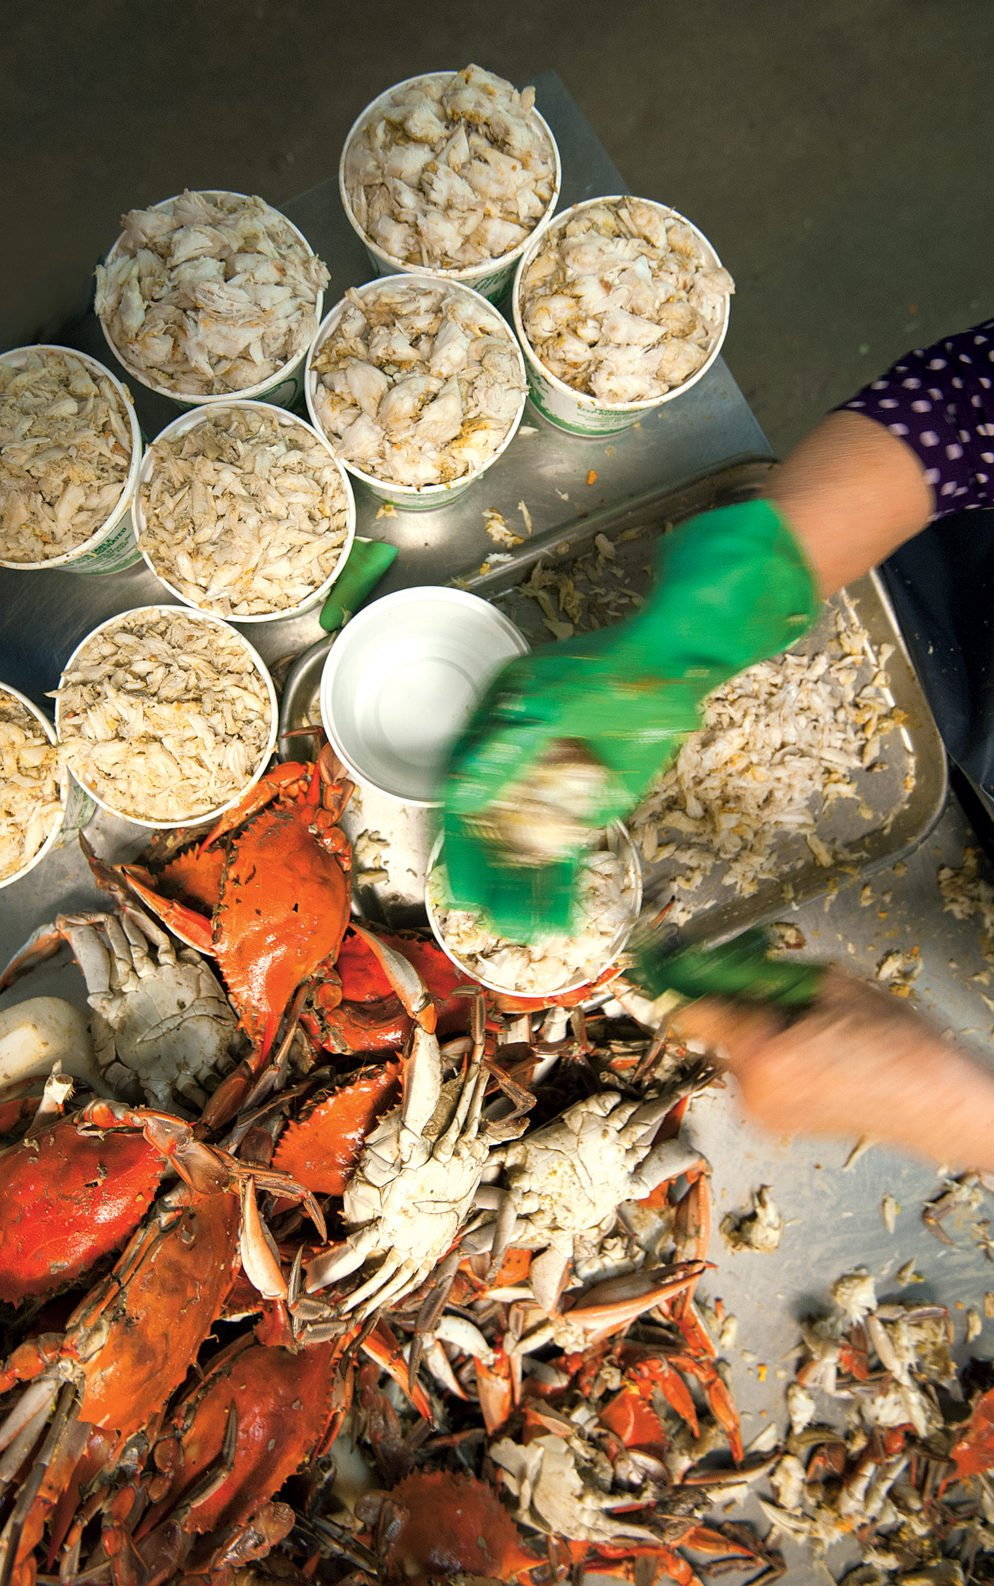 Looking for Packaged Blue Crab? It'll Cost You